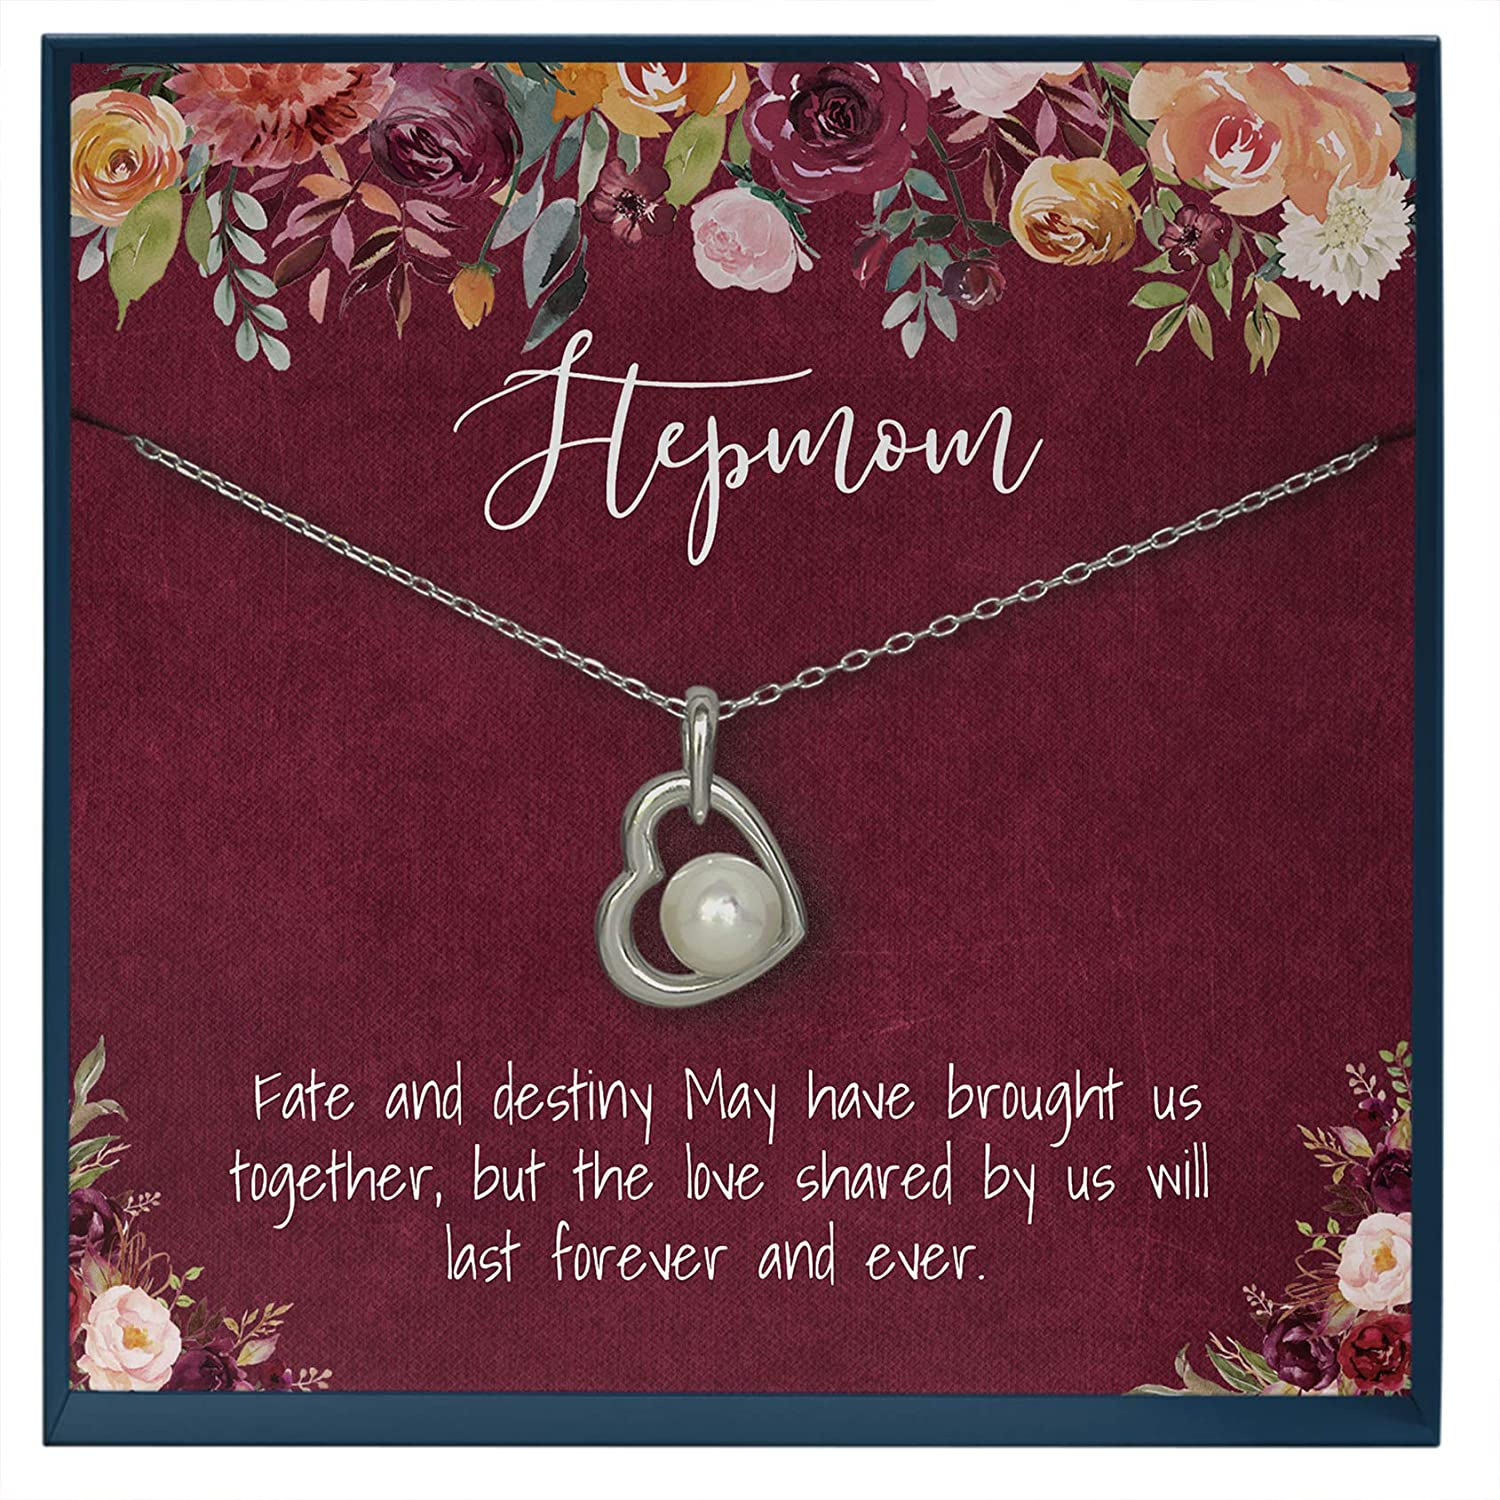 Mother and Son Necklace Gifts for Mom Gifts for Mother Birthday Gifts Muse Infinite Gifts for Mother Necklace Gifts for Mom Necklace Gifts for Mum Gifts from Son